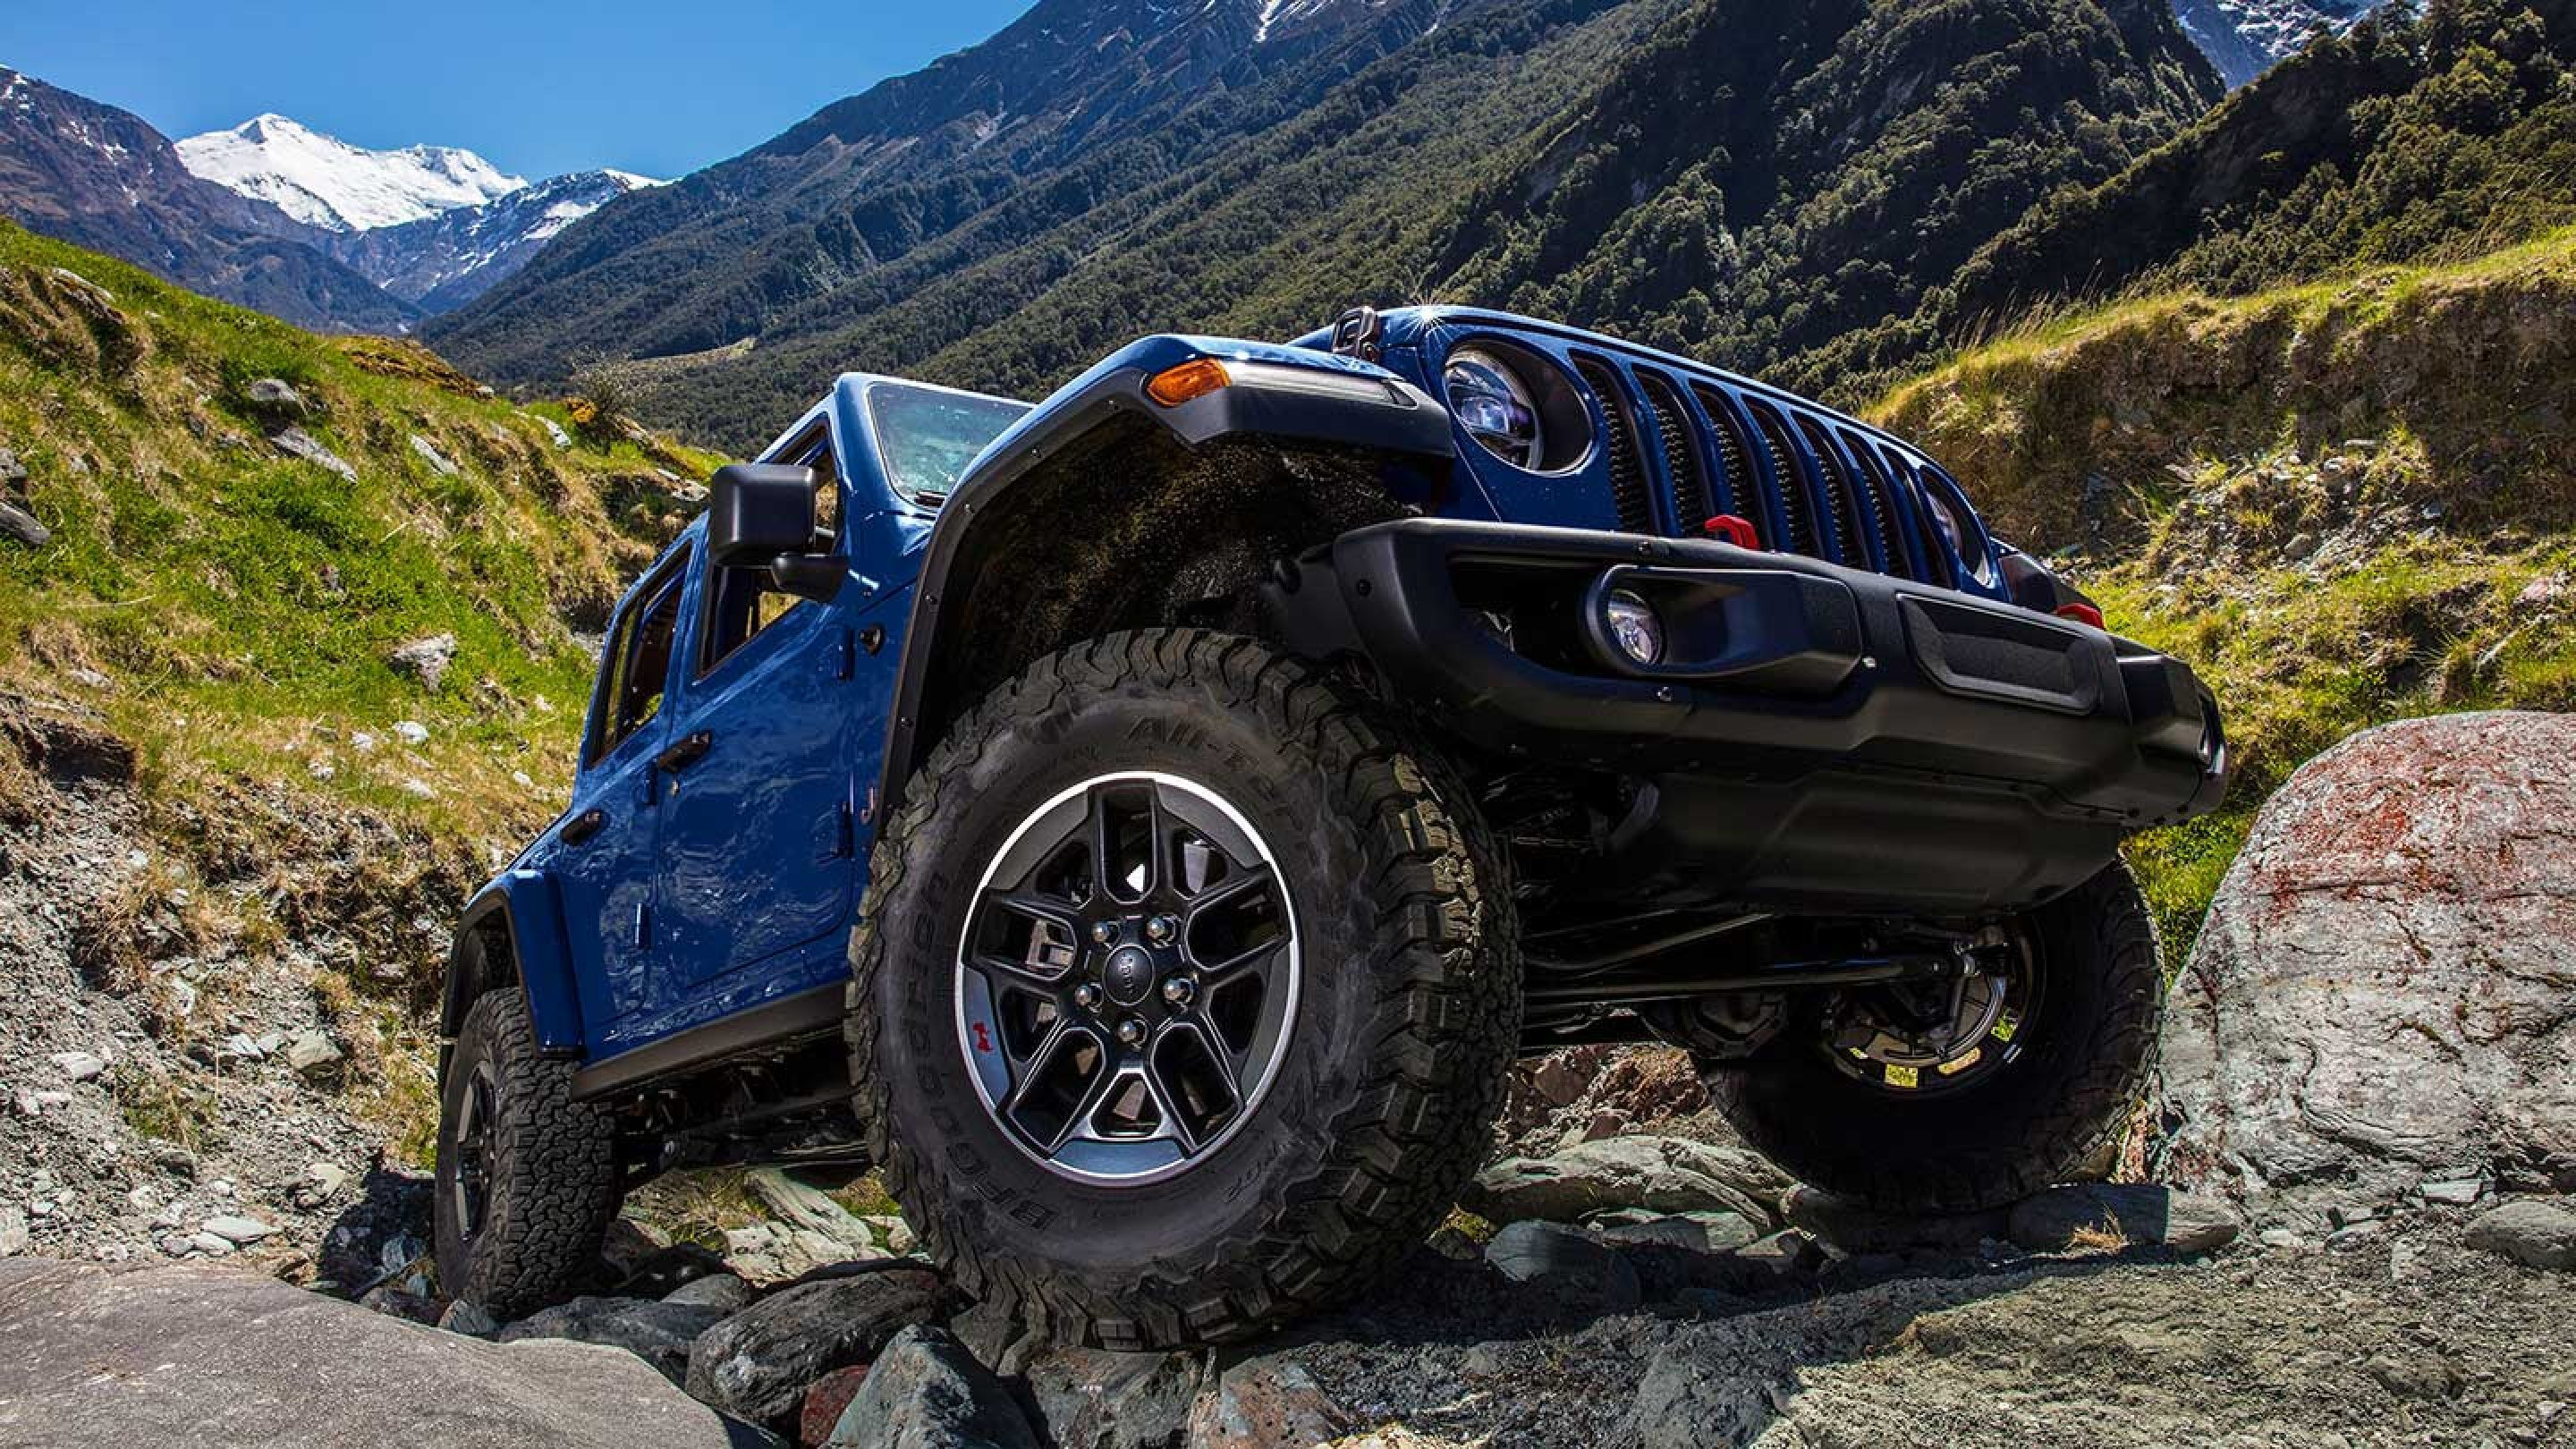 feb4f525e3 The folks on staff at Autoblog spotted a bright red Jeep Wrangler Unlimited  lately seen here with one very important letter on the tailgate: the 3.0 D  ...